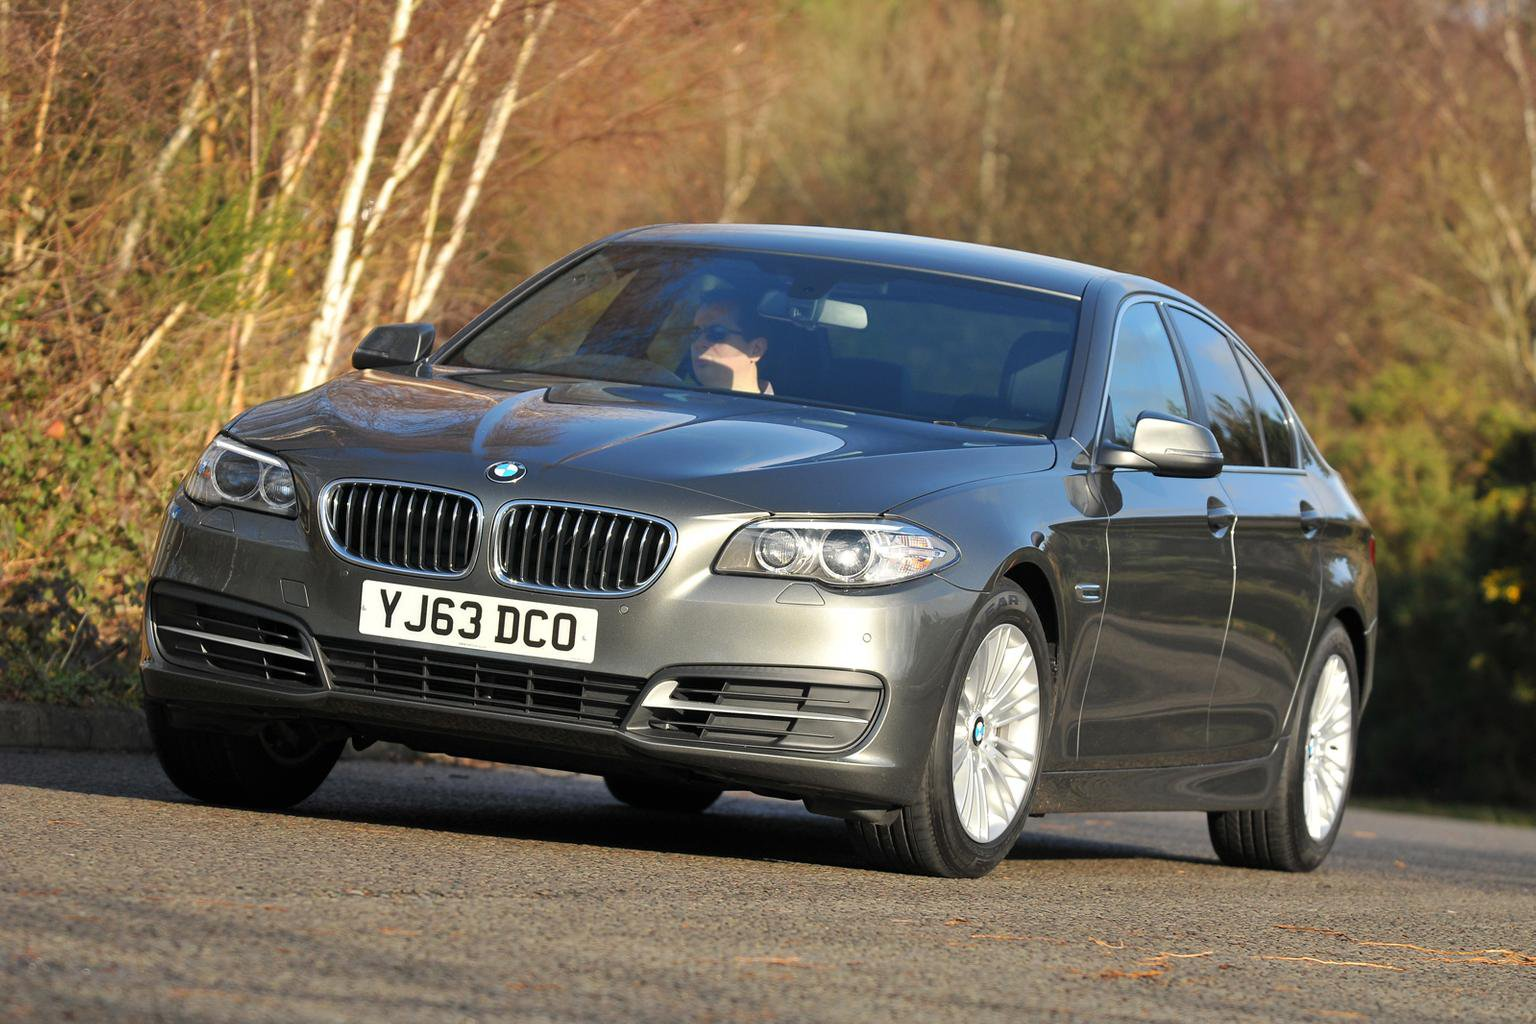 Get more than 11,000 off a BMW in this week's deals